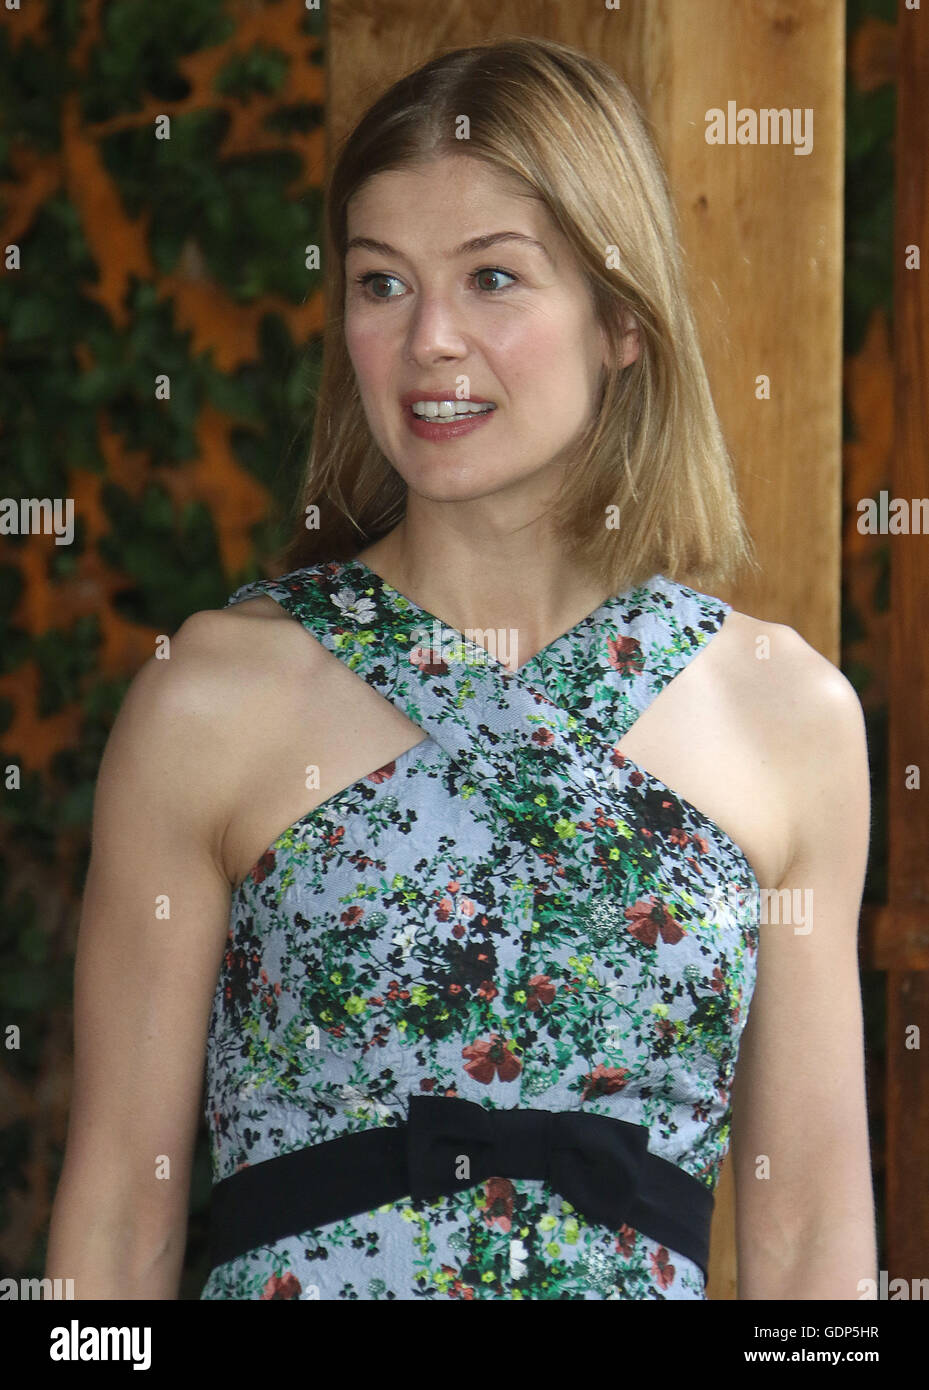 May 23, 2016 - Rosamund Pike at Chelsea Flower Show 2016 in London, UK. Stock Photo